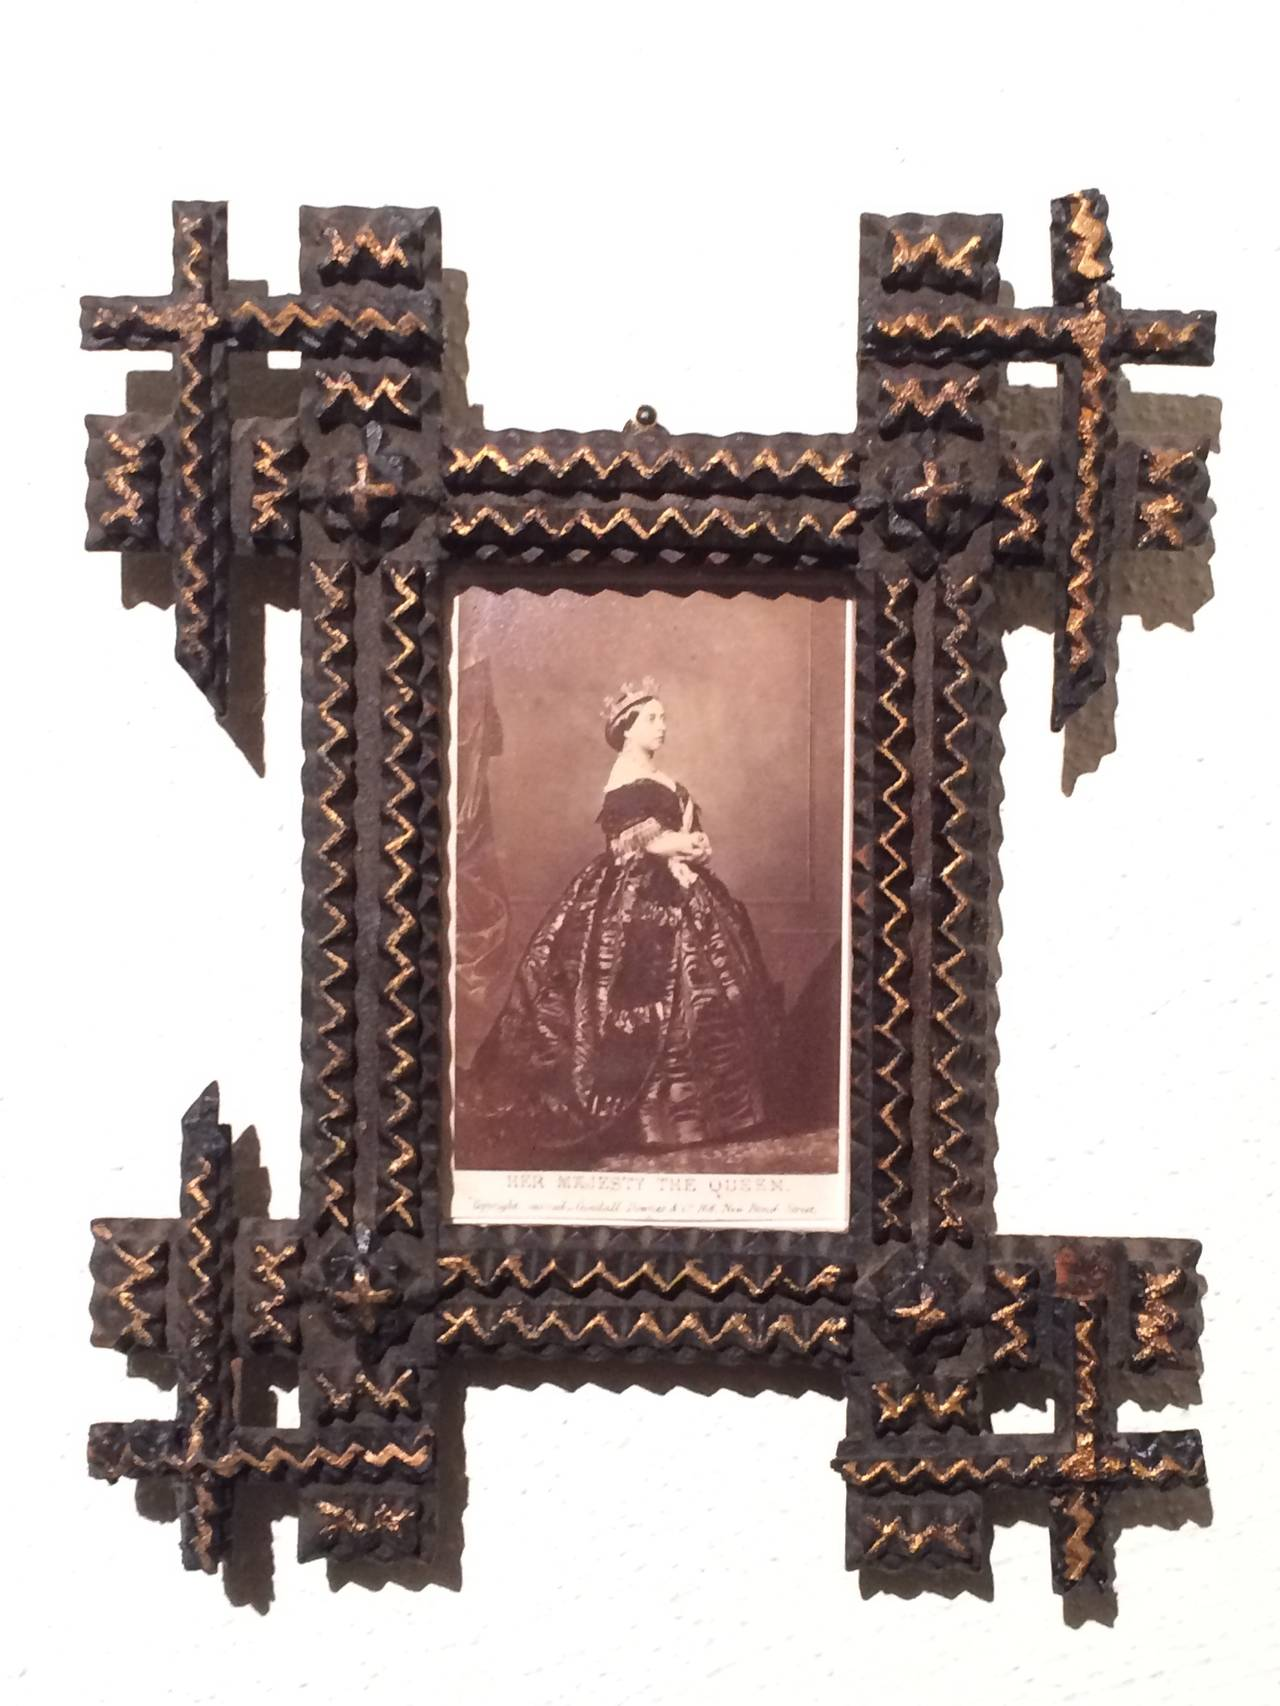 Pair of Tramp Art Frames with Sepia Photographs For Sale at 1stdibs